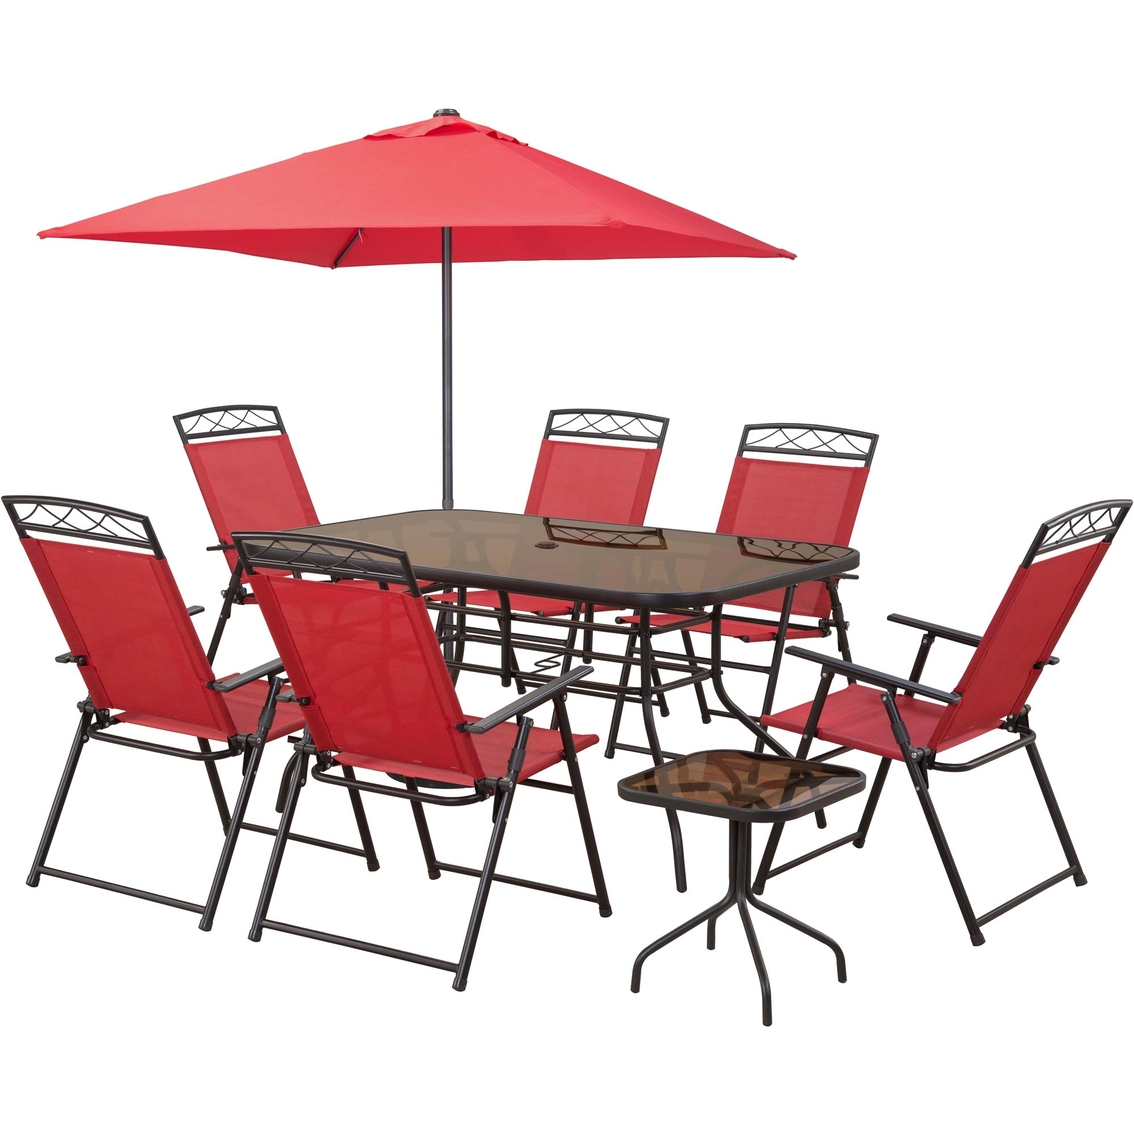 Tremendous Courtyard Creations Arrowhead 9 Pc Sling Folding Set Machost Co Dining Chair Design Ideas Machostcouk